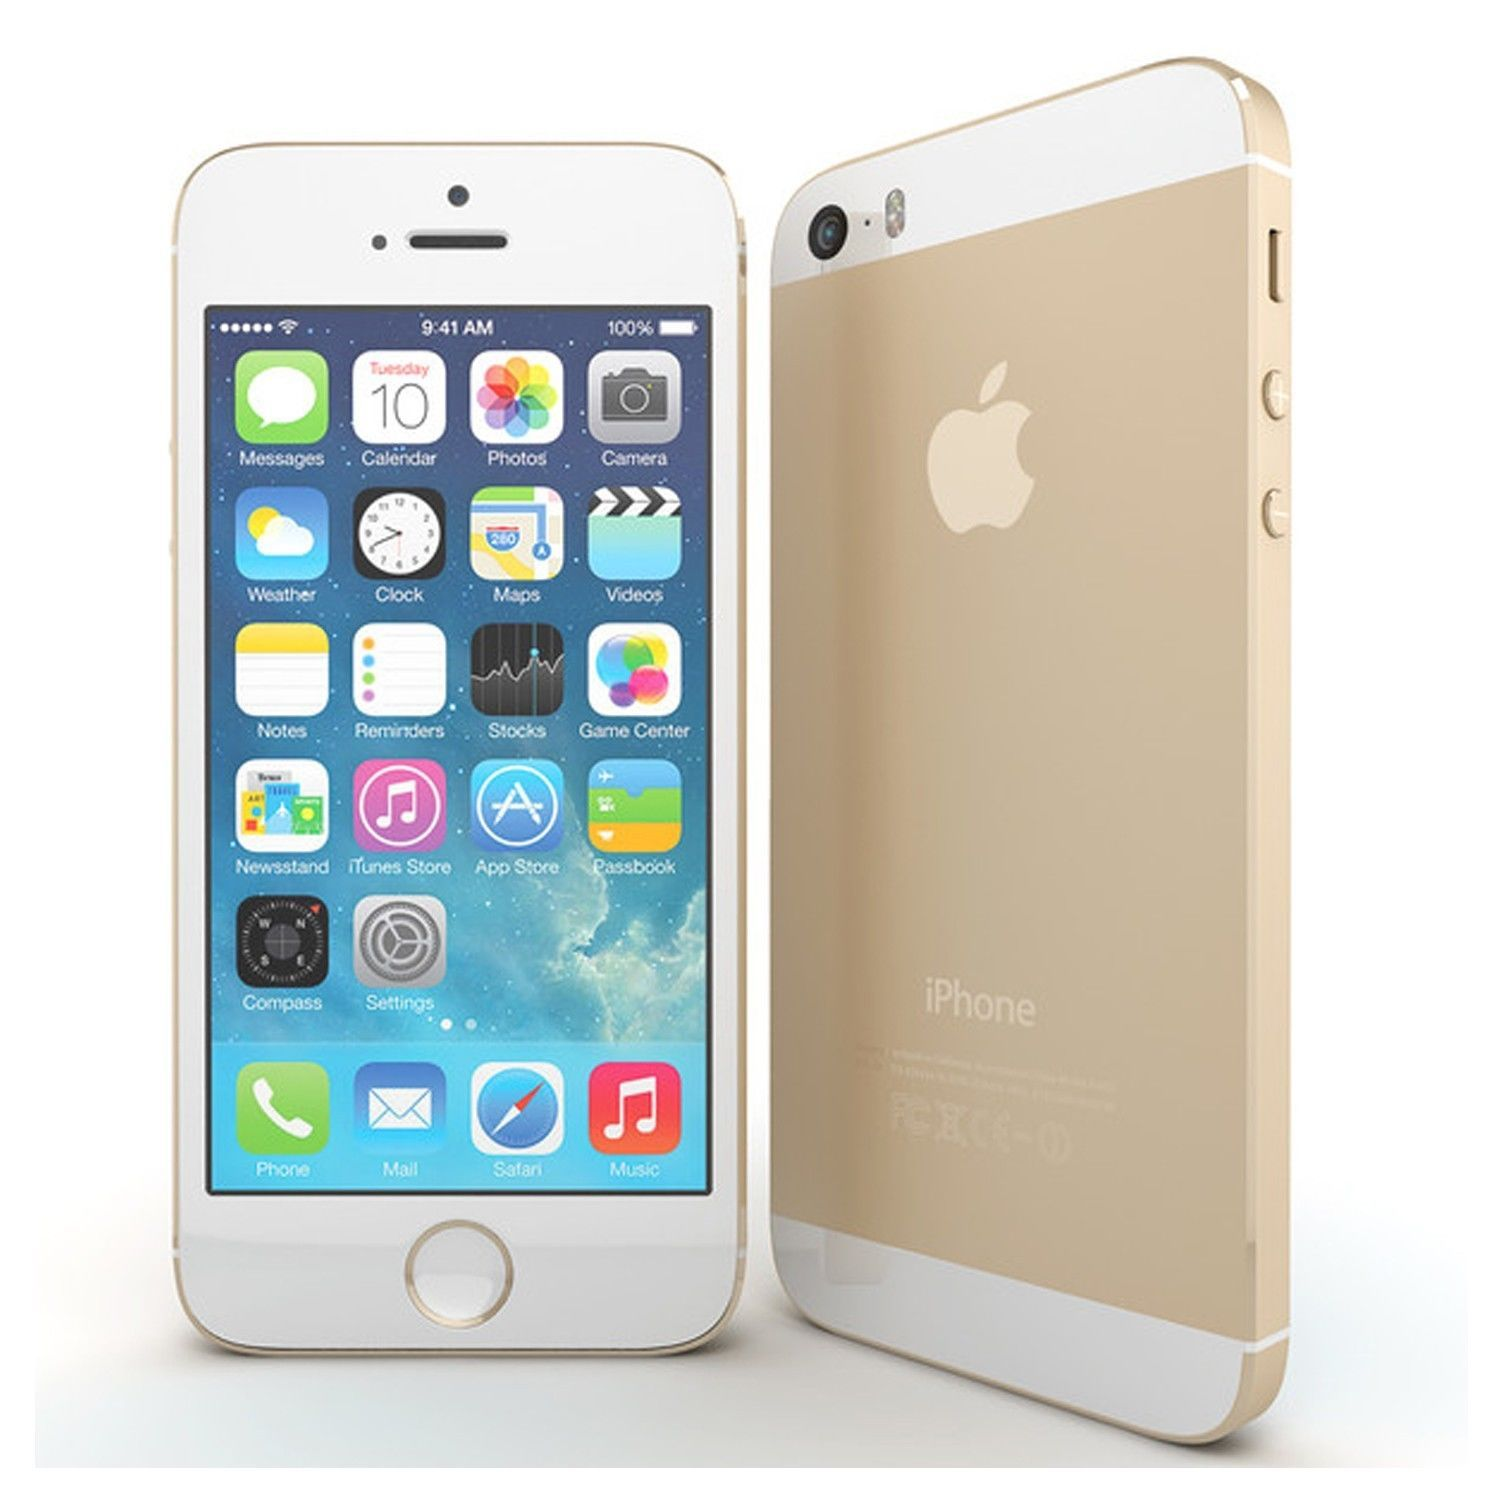 Apple iPhone 5s 16GB Gold TMobile Excellent Condition